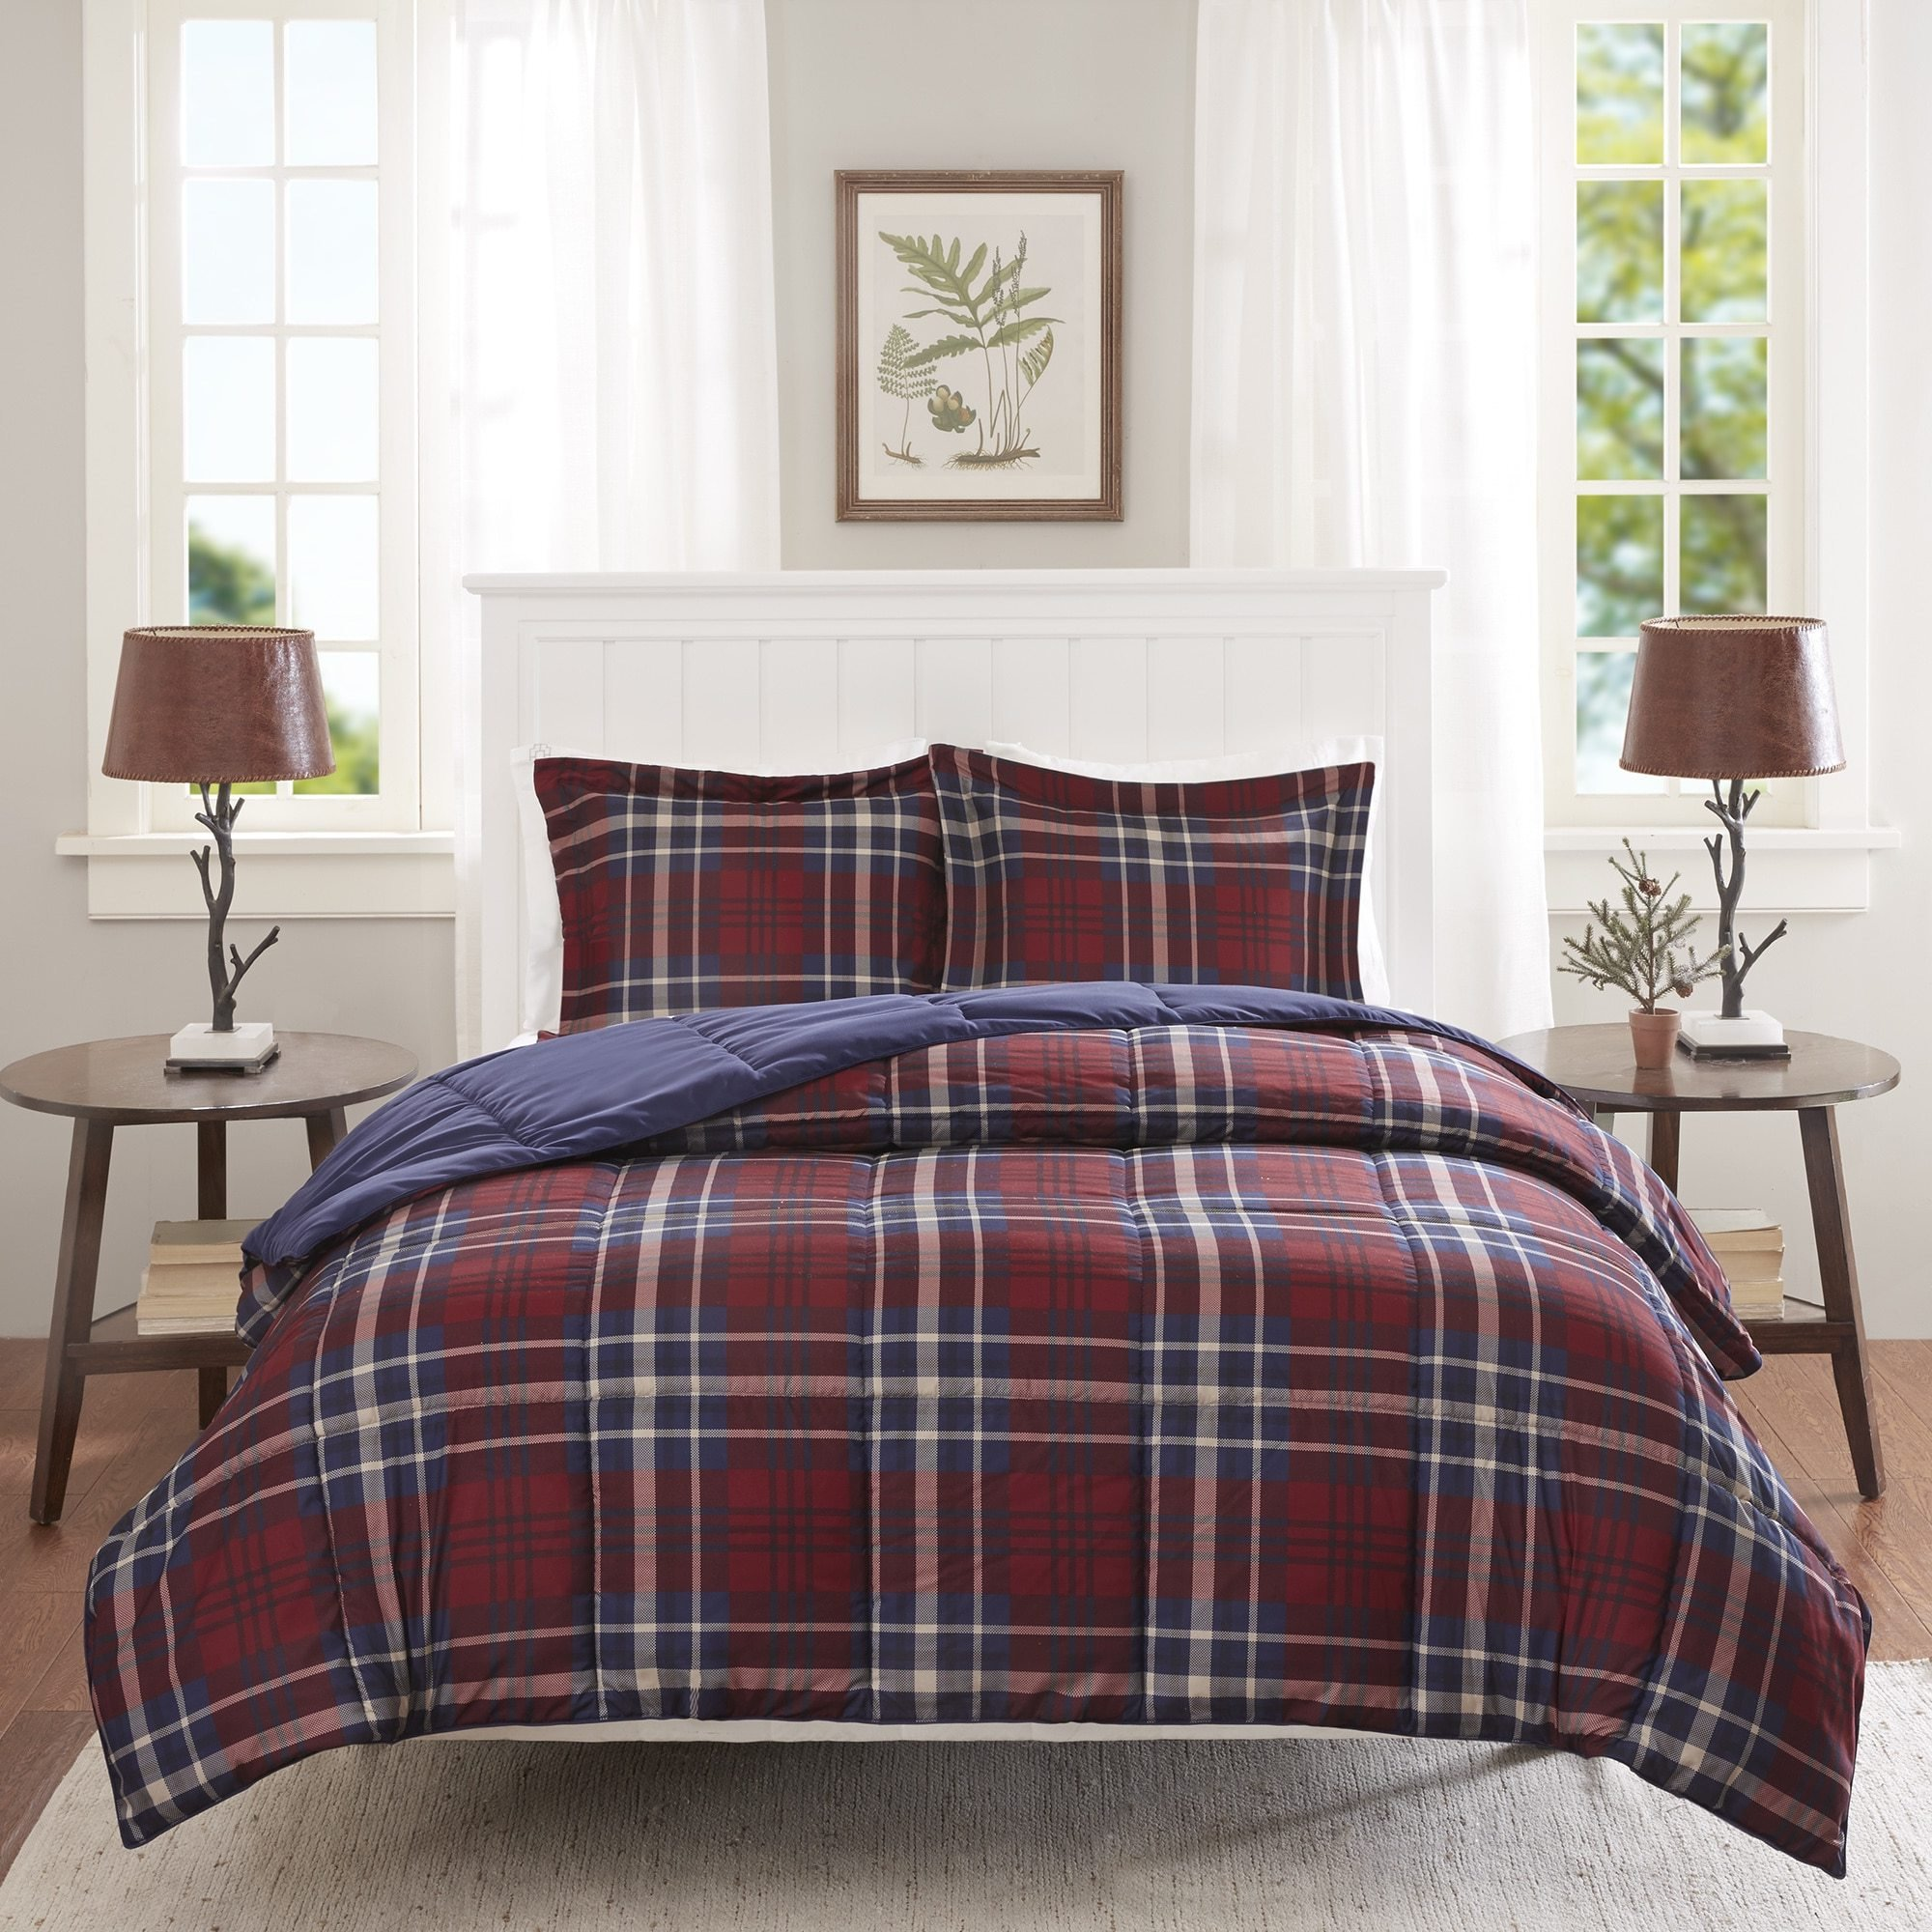 D&H 2 Piece Navy Blue Burgundy Red Plaid Comforter Twin/Twin XL Set, Cozy Warm Cabin Themed Bedding Checked Lumberjack Pattern Lodge Southwest Tartan Madras Cottage, Reversible Solid Color Microfiber